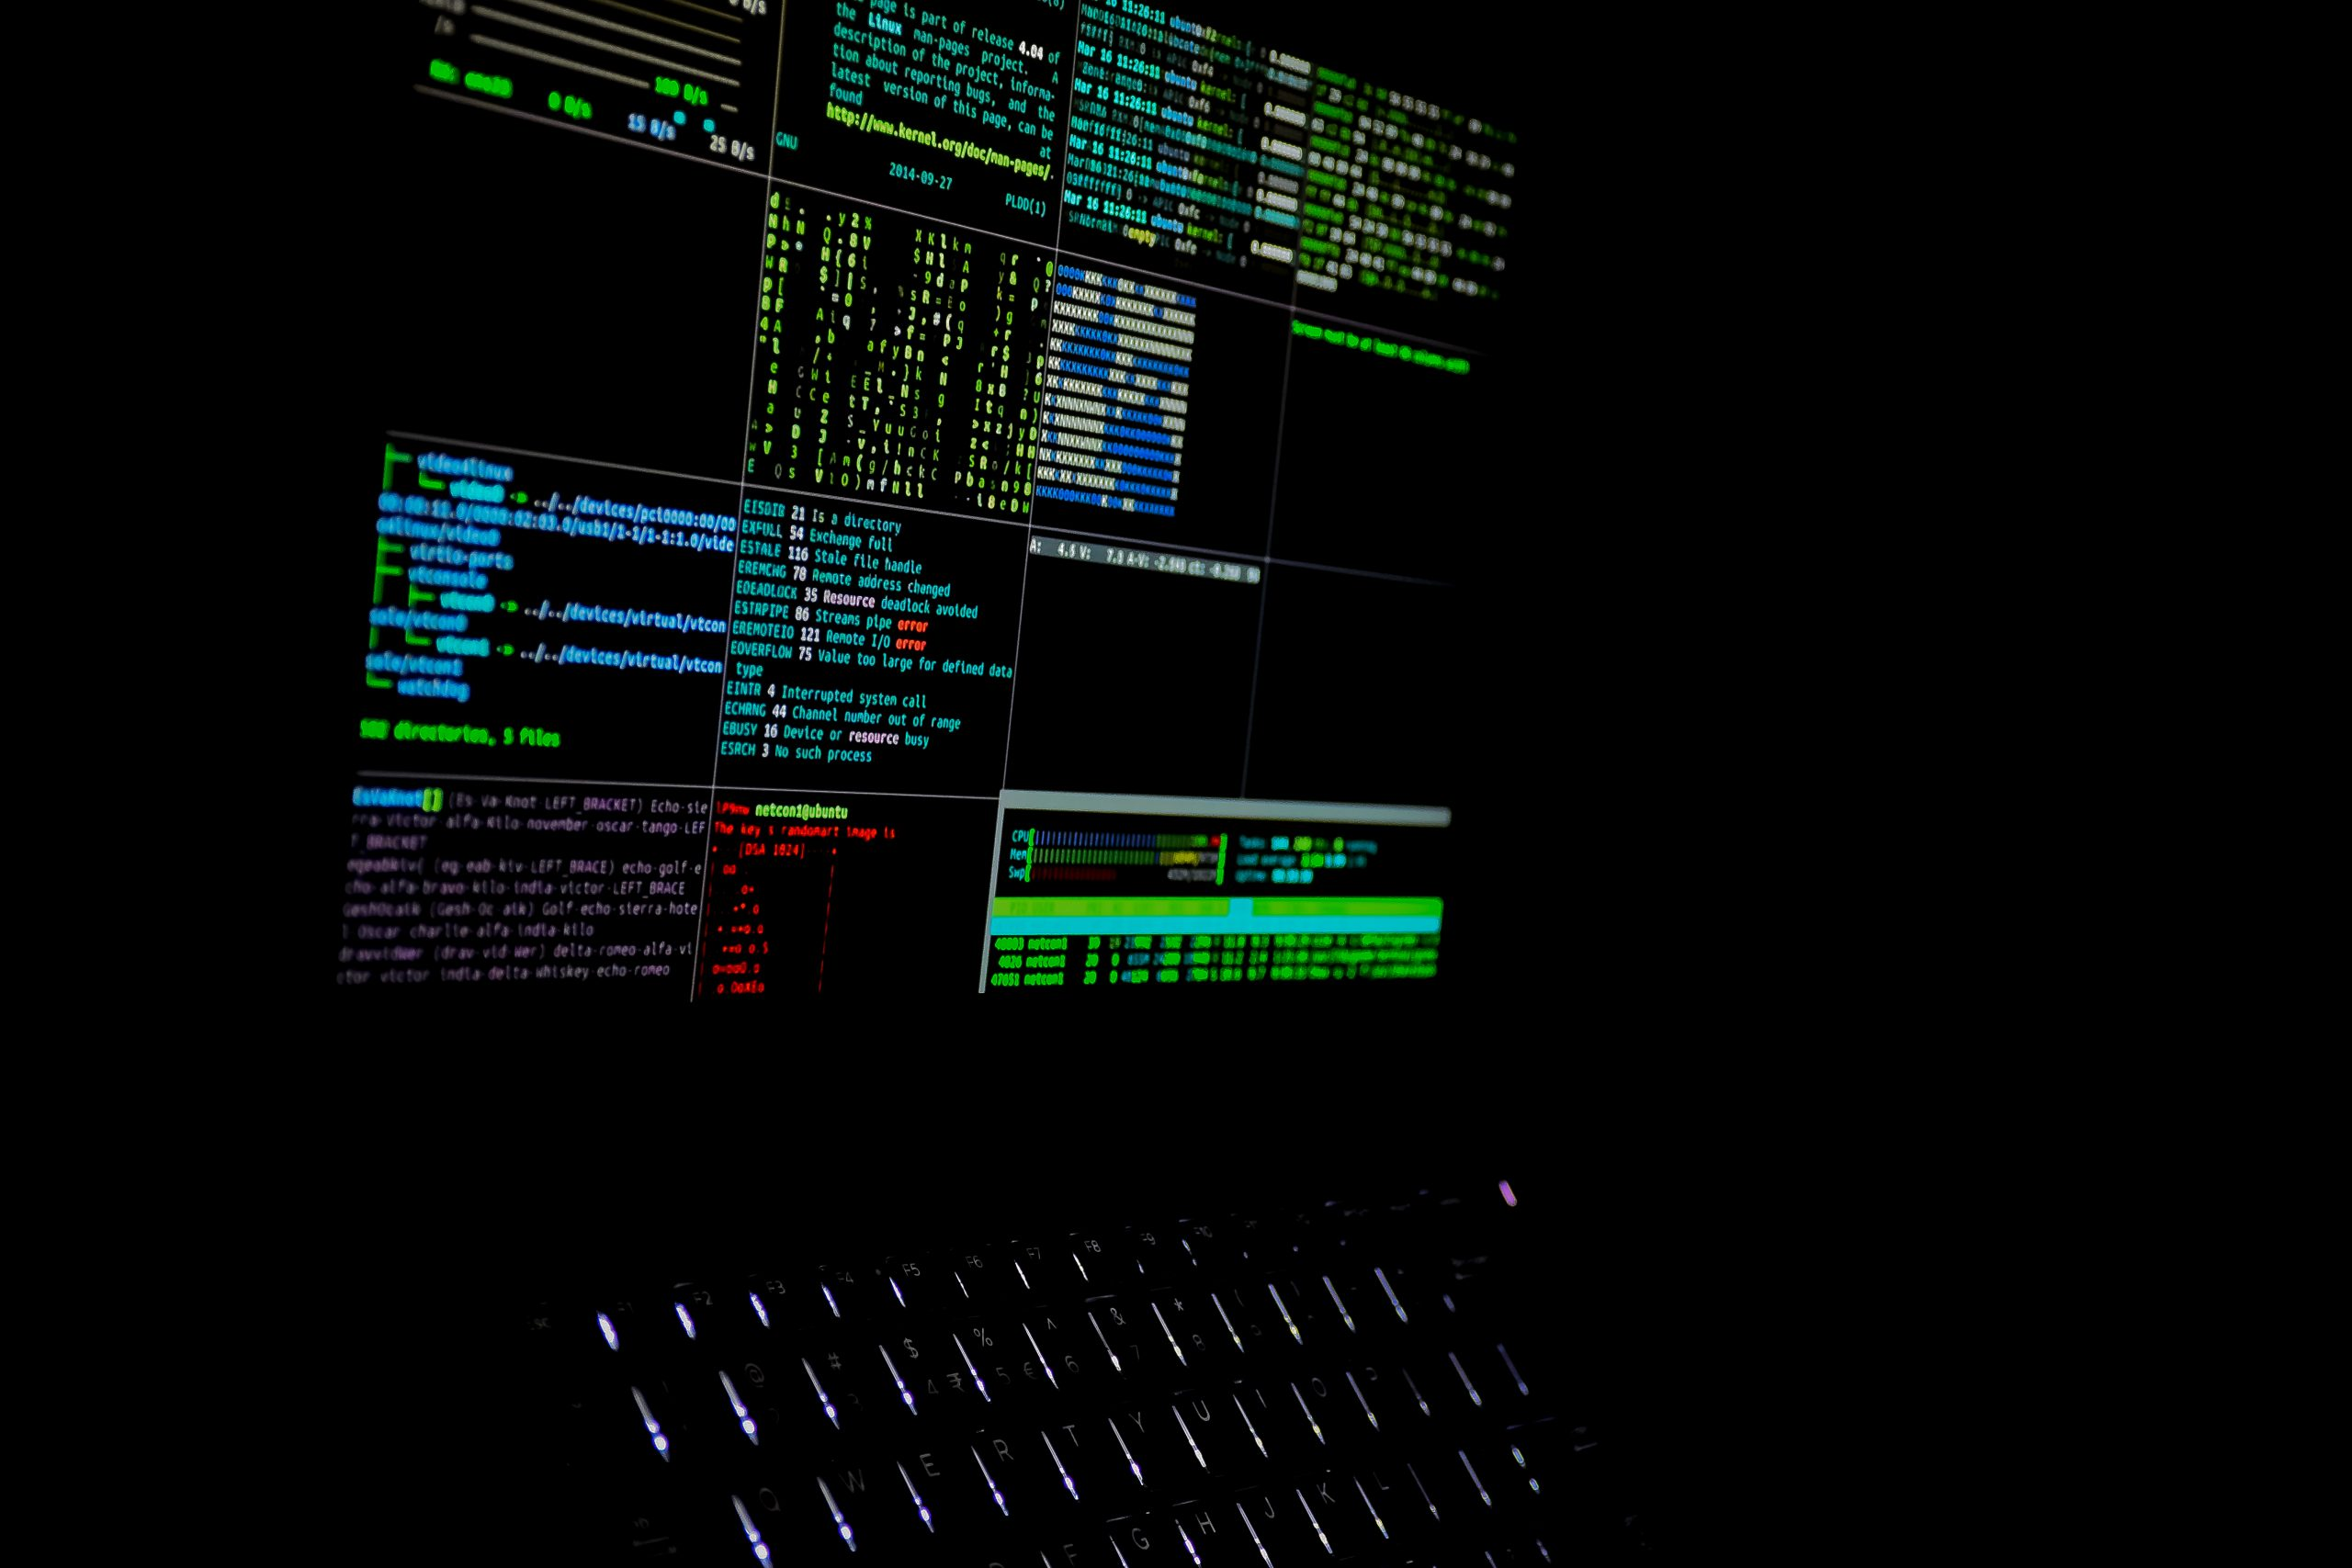 hacking operation performed on PC